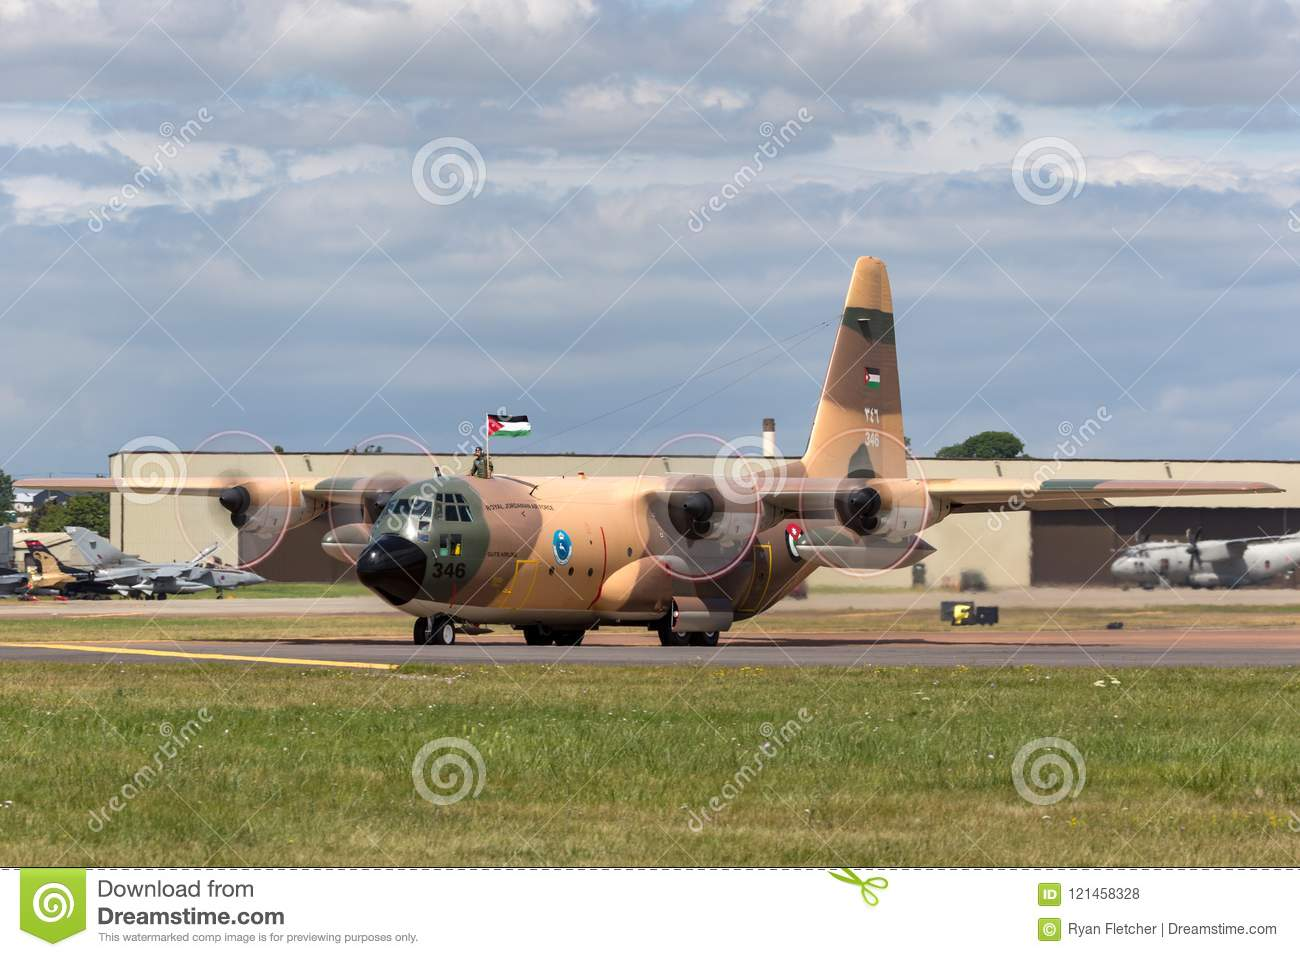 Royal Jordanian Air Force Lockheed C-130H Hercules Military ... a48d7ffb3